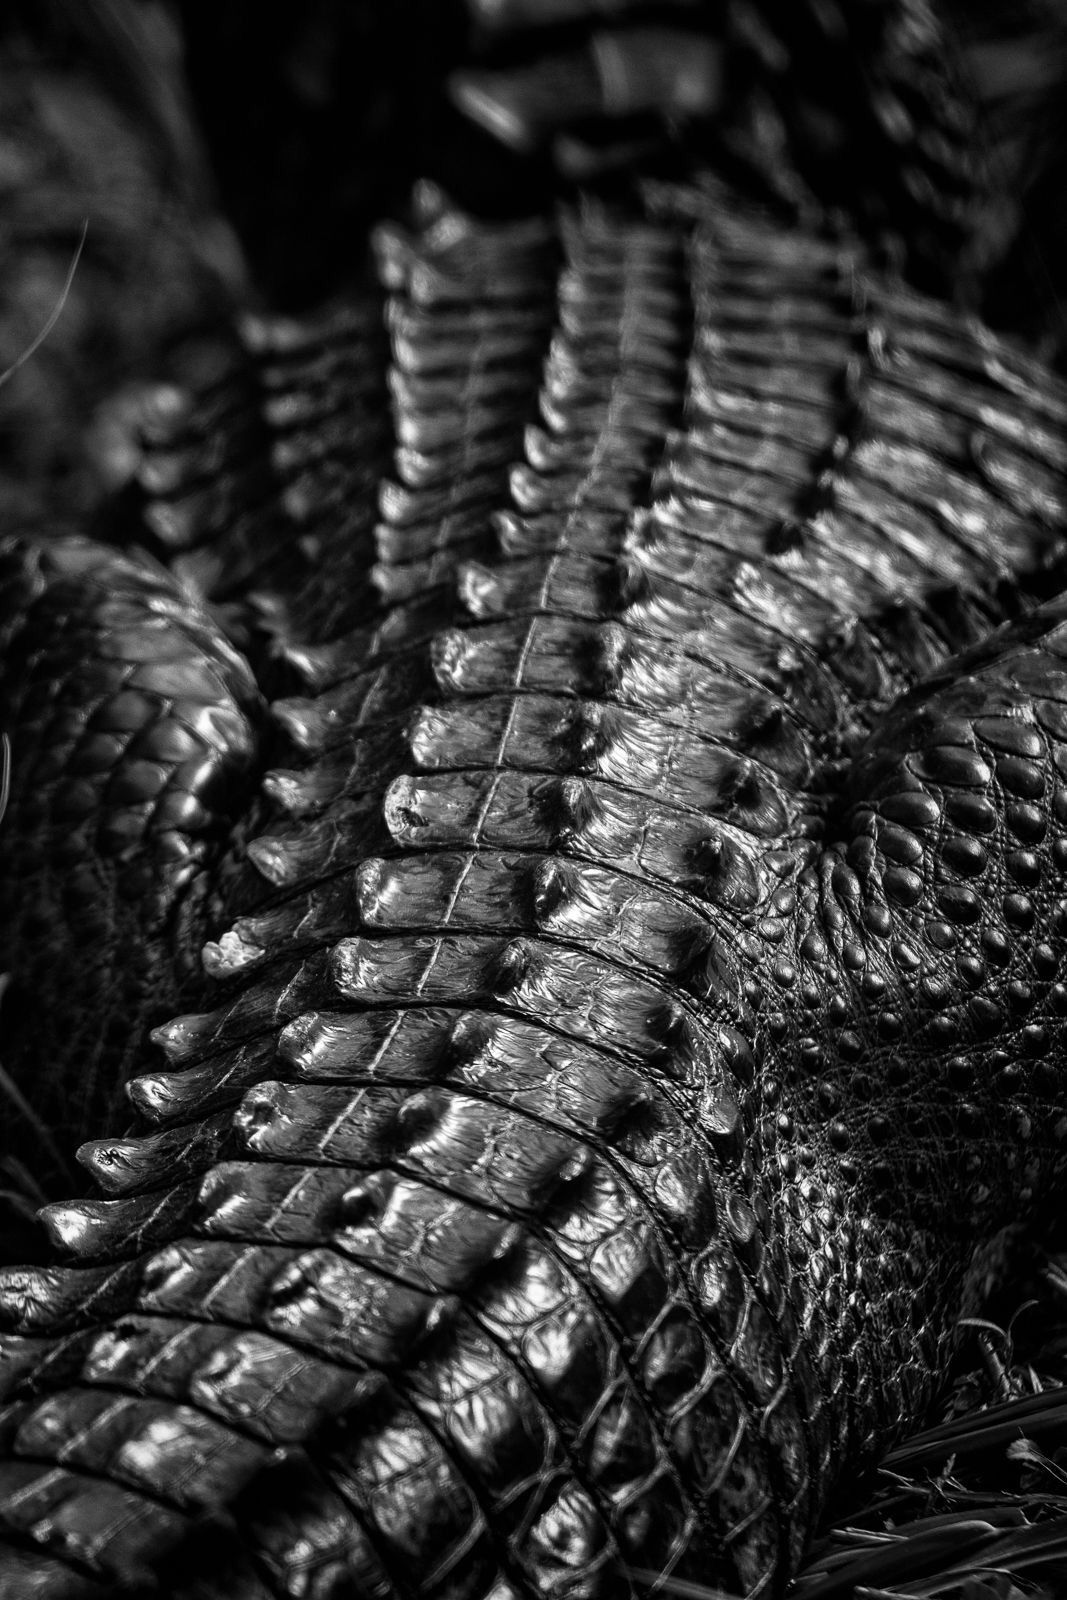 its the texture of a gators skin taken in black in white which brings out the minor details since the lack of color allows the texture to shine through - Coloration Martine Mah Composition